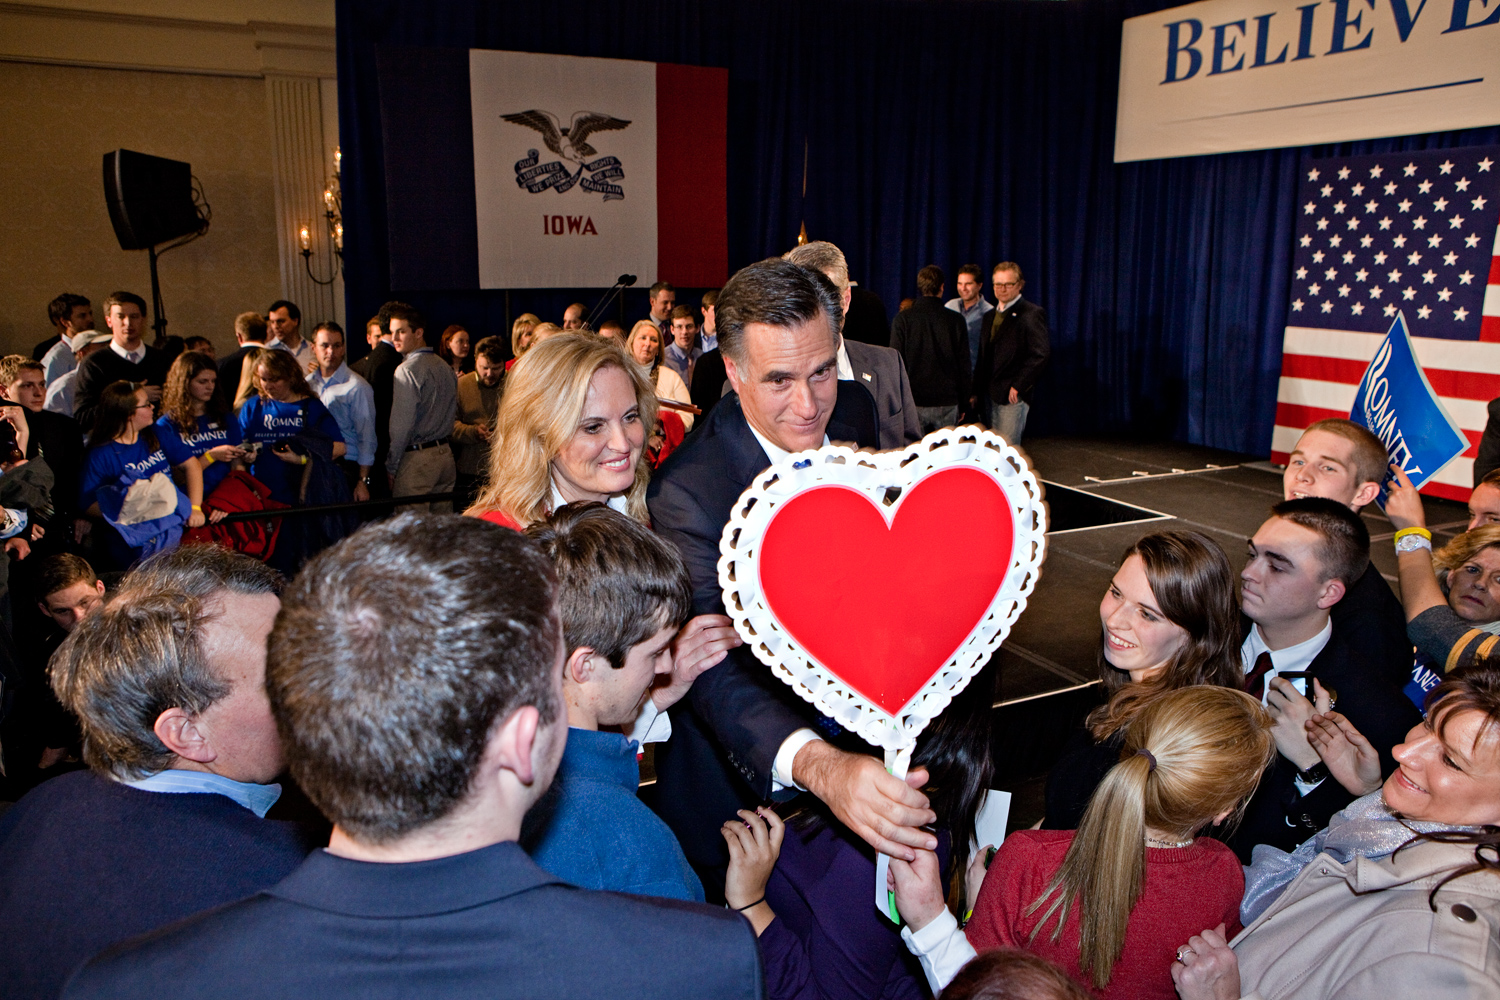 Republican presidential candidate Mitt Romney and his wife Ann are greeted with a gift from a supporter at his Iowa Caucus night rally in Des Moines, Iowa, January 3, 2012.